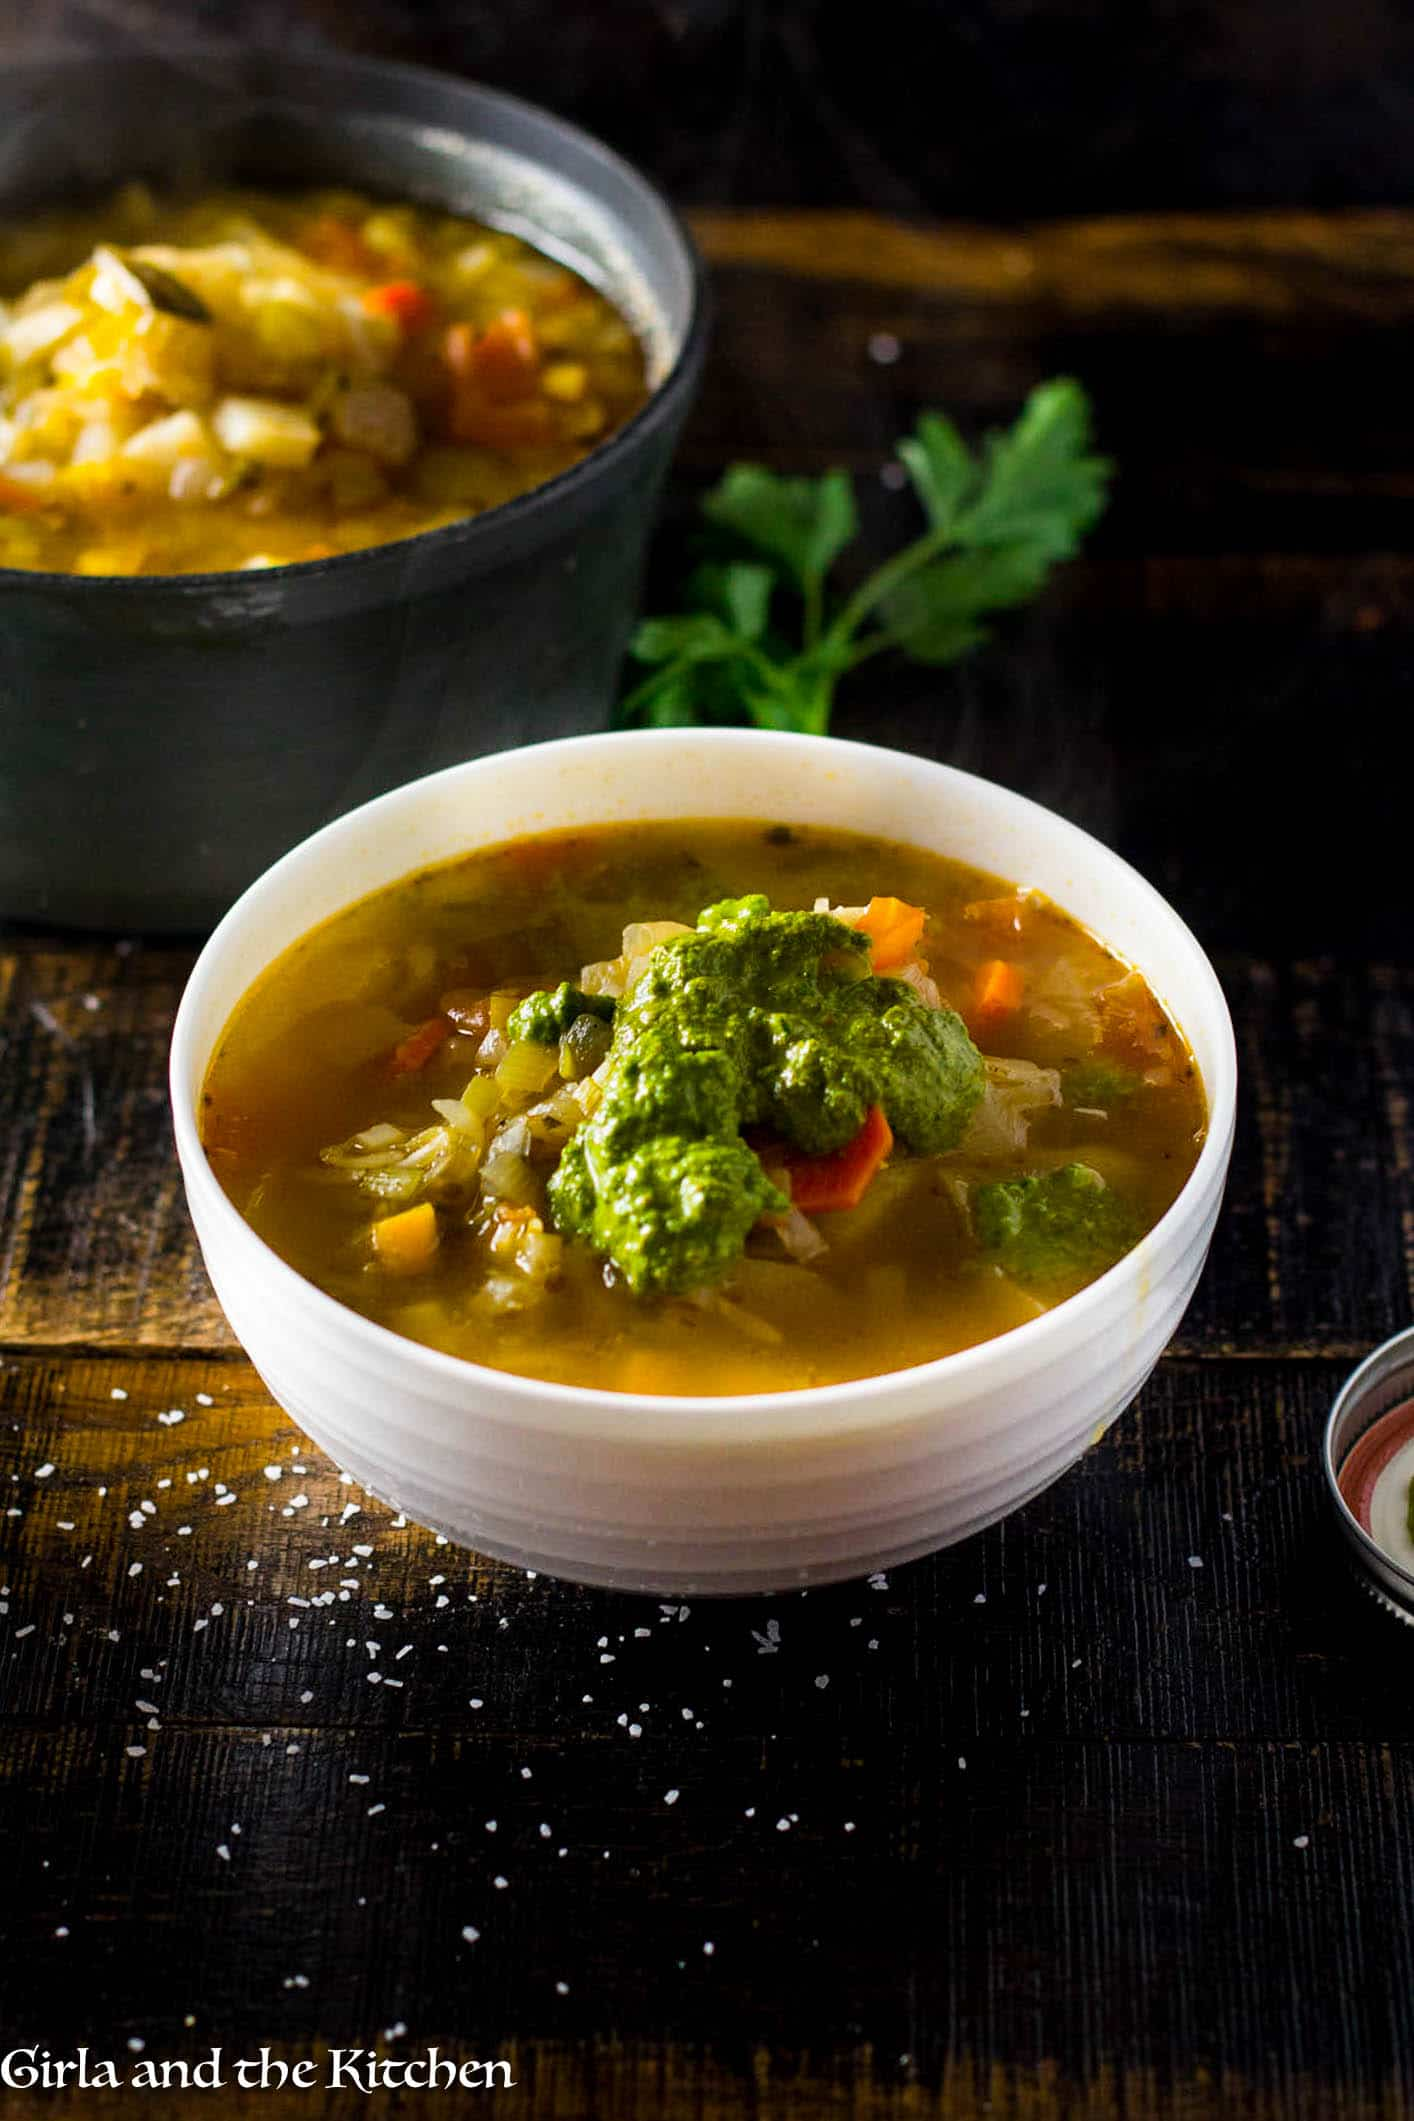 A classic French country vegetable soup loaded with fresh good for you veggies and finished off with an unforgettable nut free French pesto. Comfort food that is both healthy and hearty!